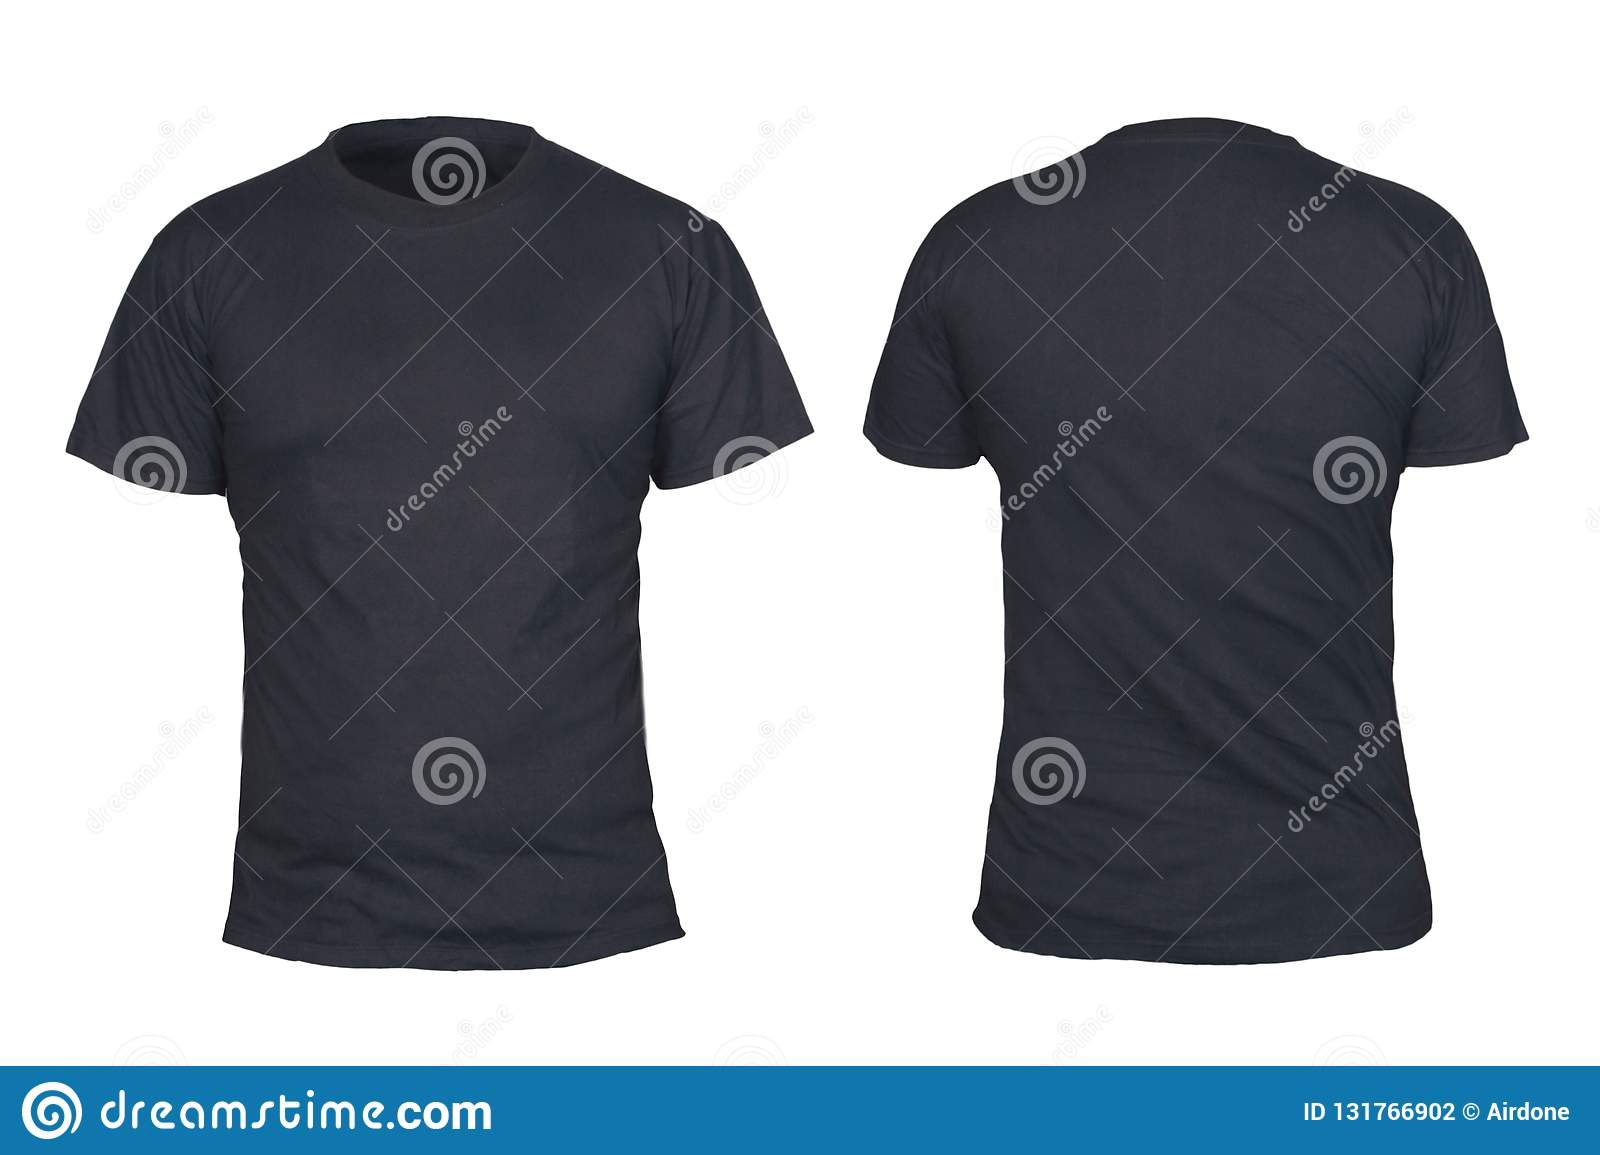 Black t-shirt mock up, front and back view, isolated. Plain black shirt mockup. Short sleeve shirt design template. Blank tees for